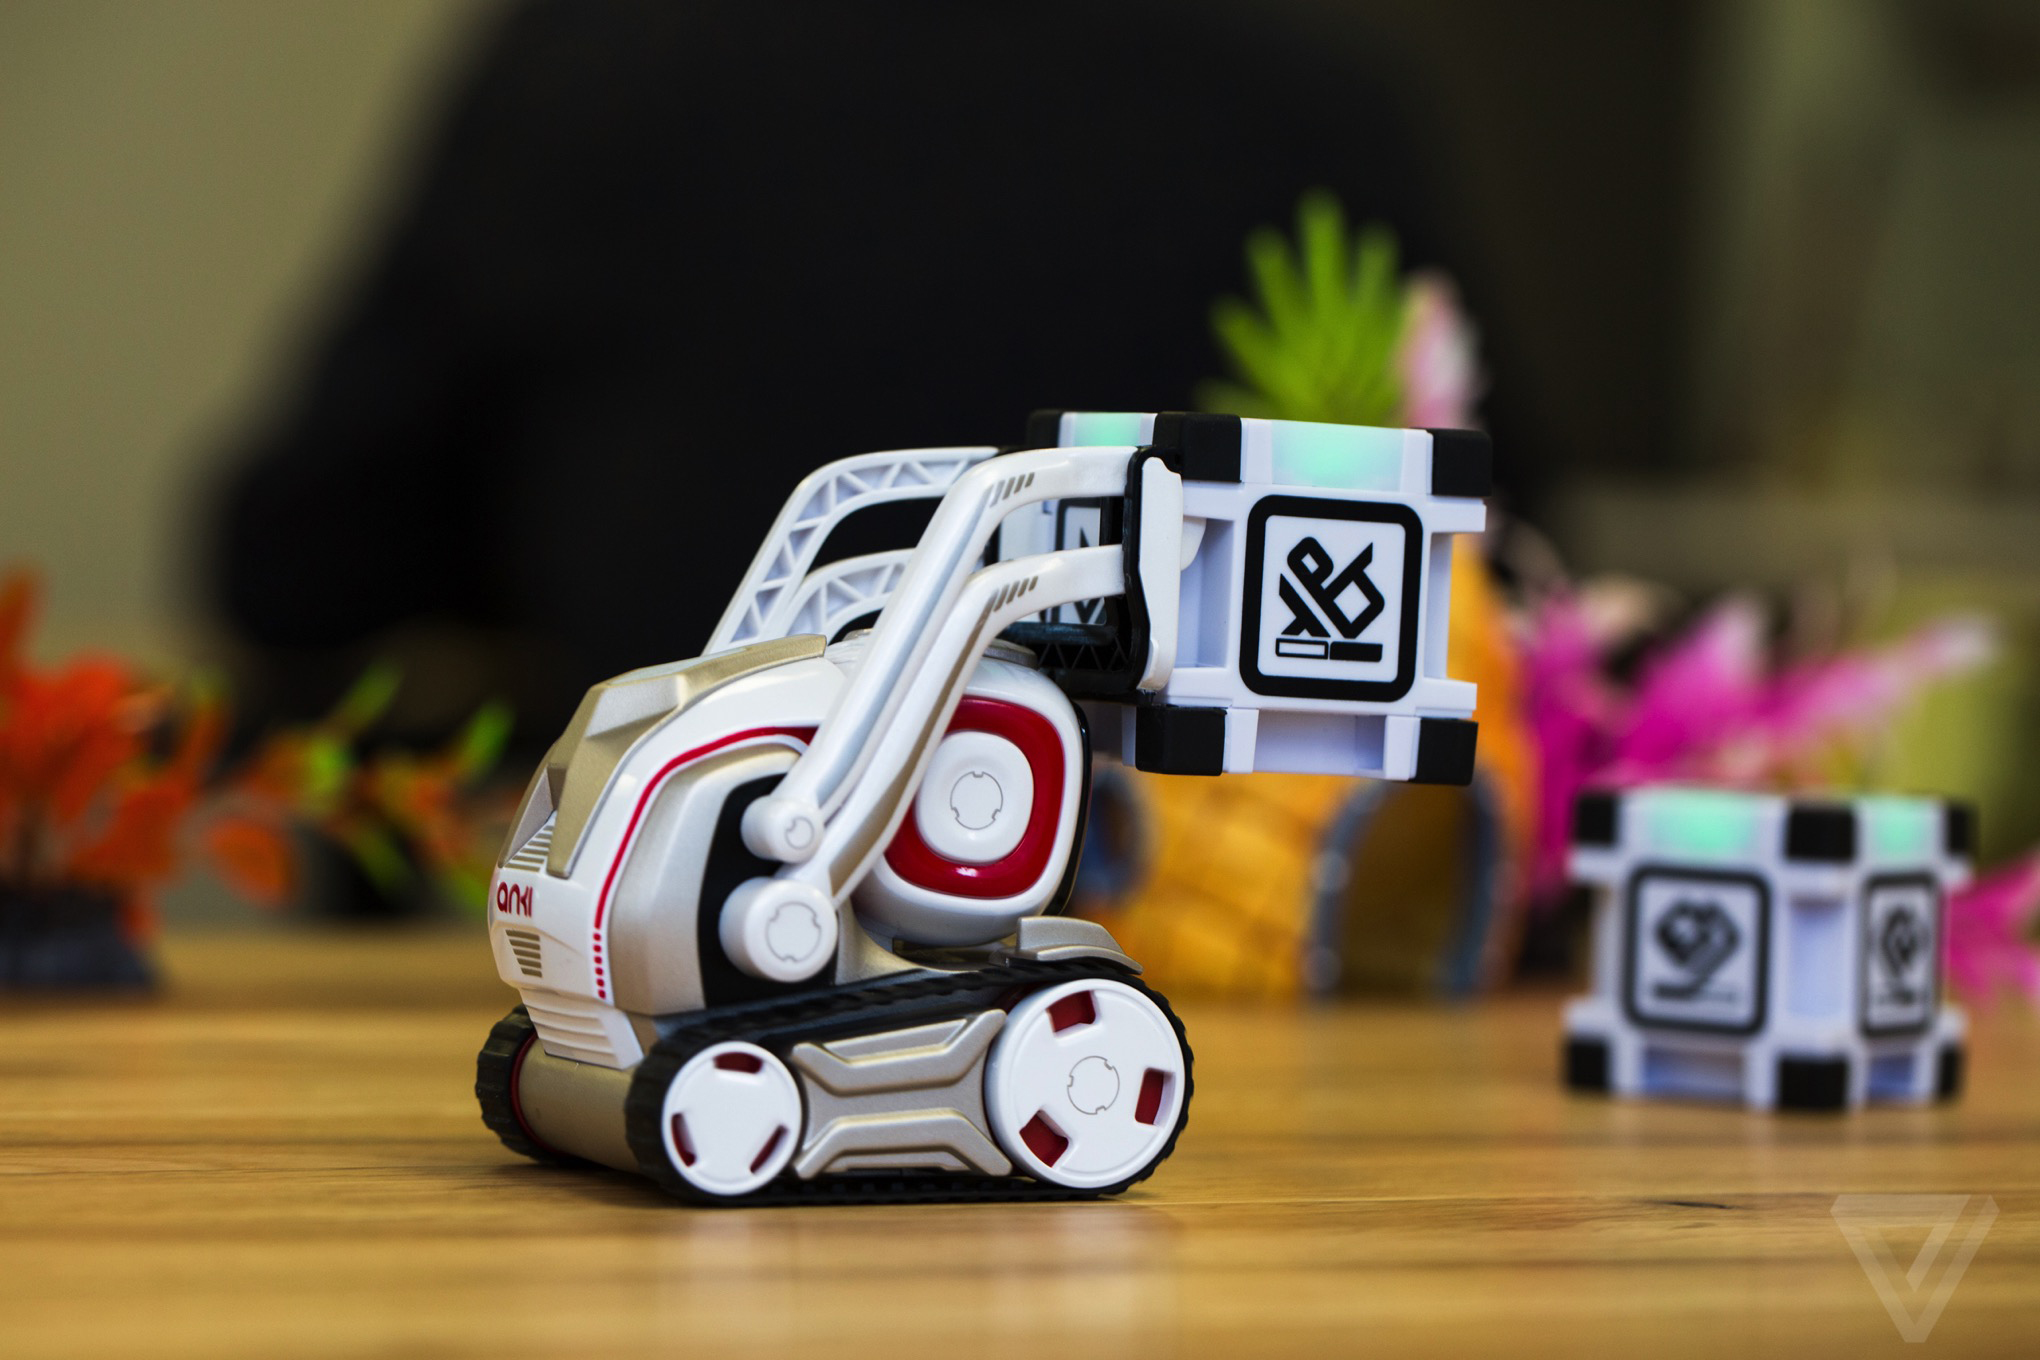 Anki s Cozmo robot is the new adorable face of artificial